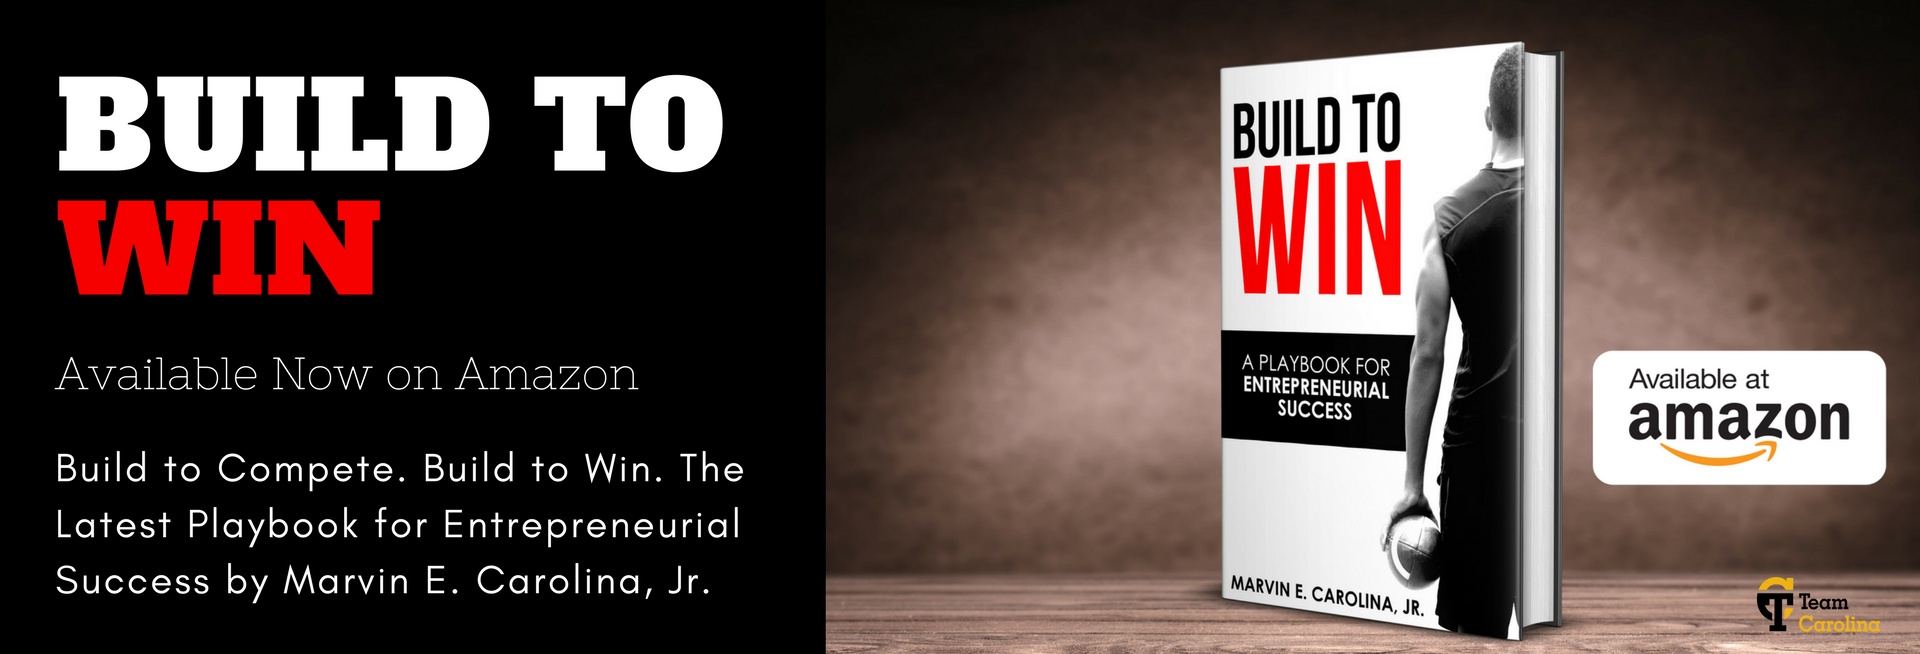 Build to Win Book by Marvin Carolina, Jr.